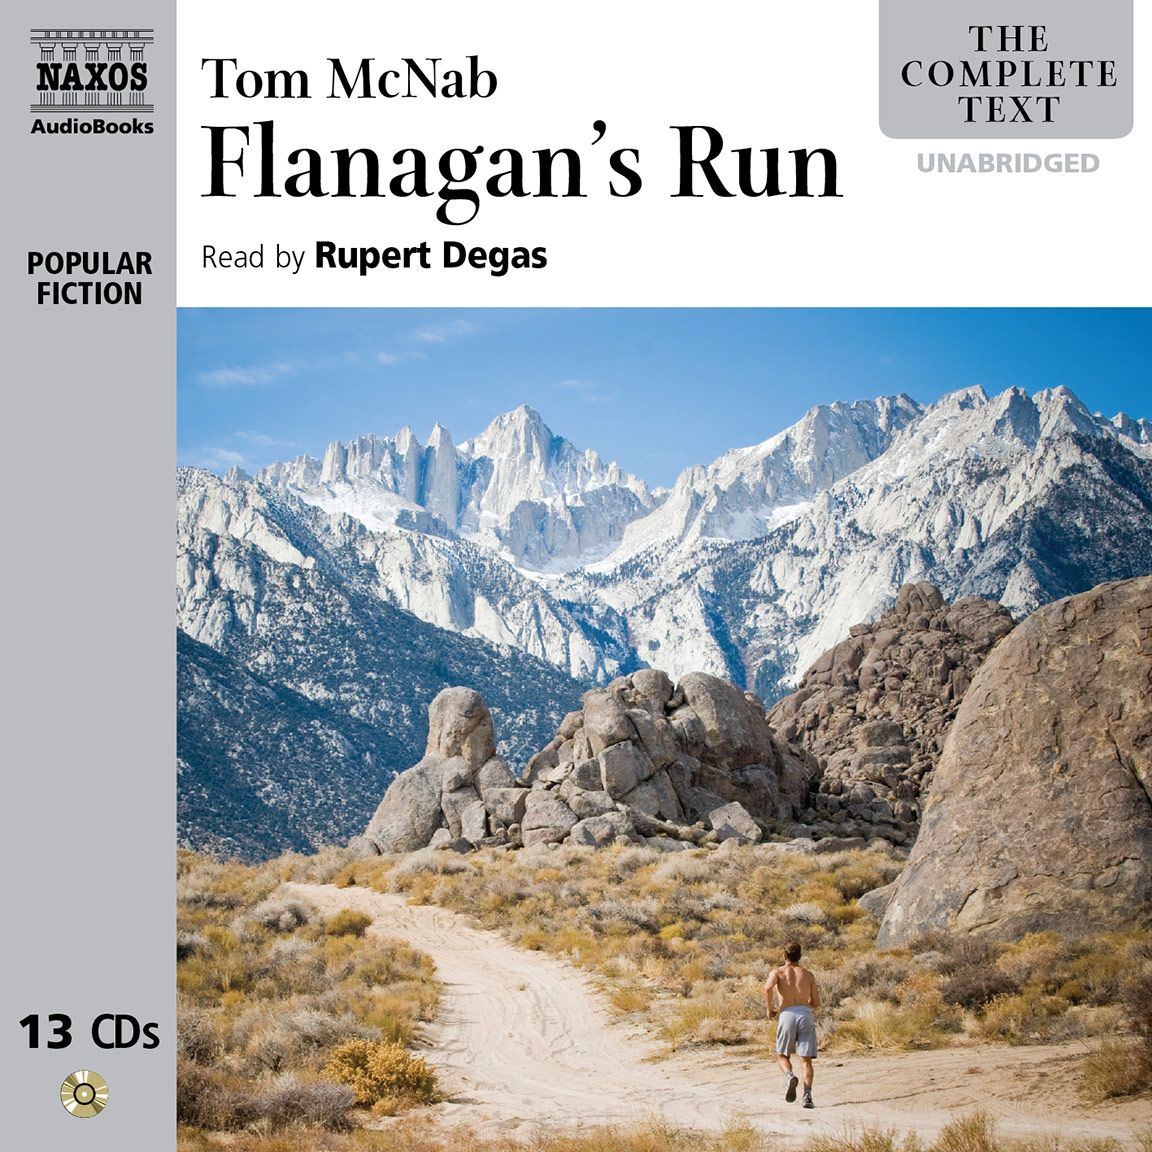 Flanagan's Run (unabridged)